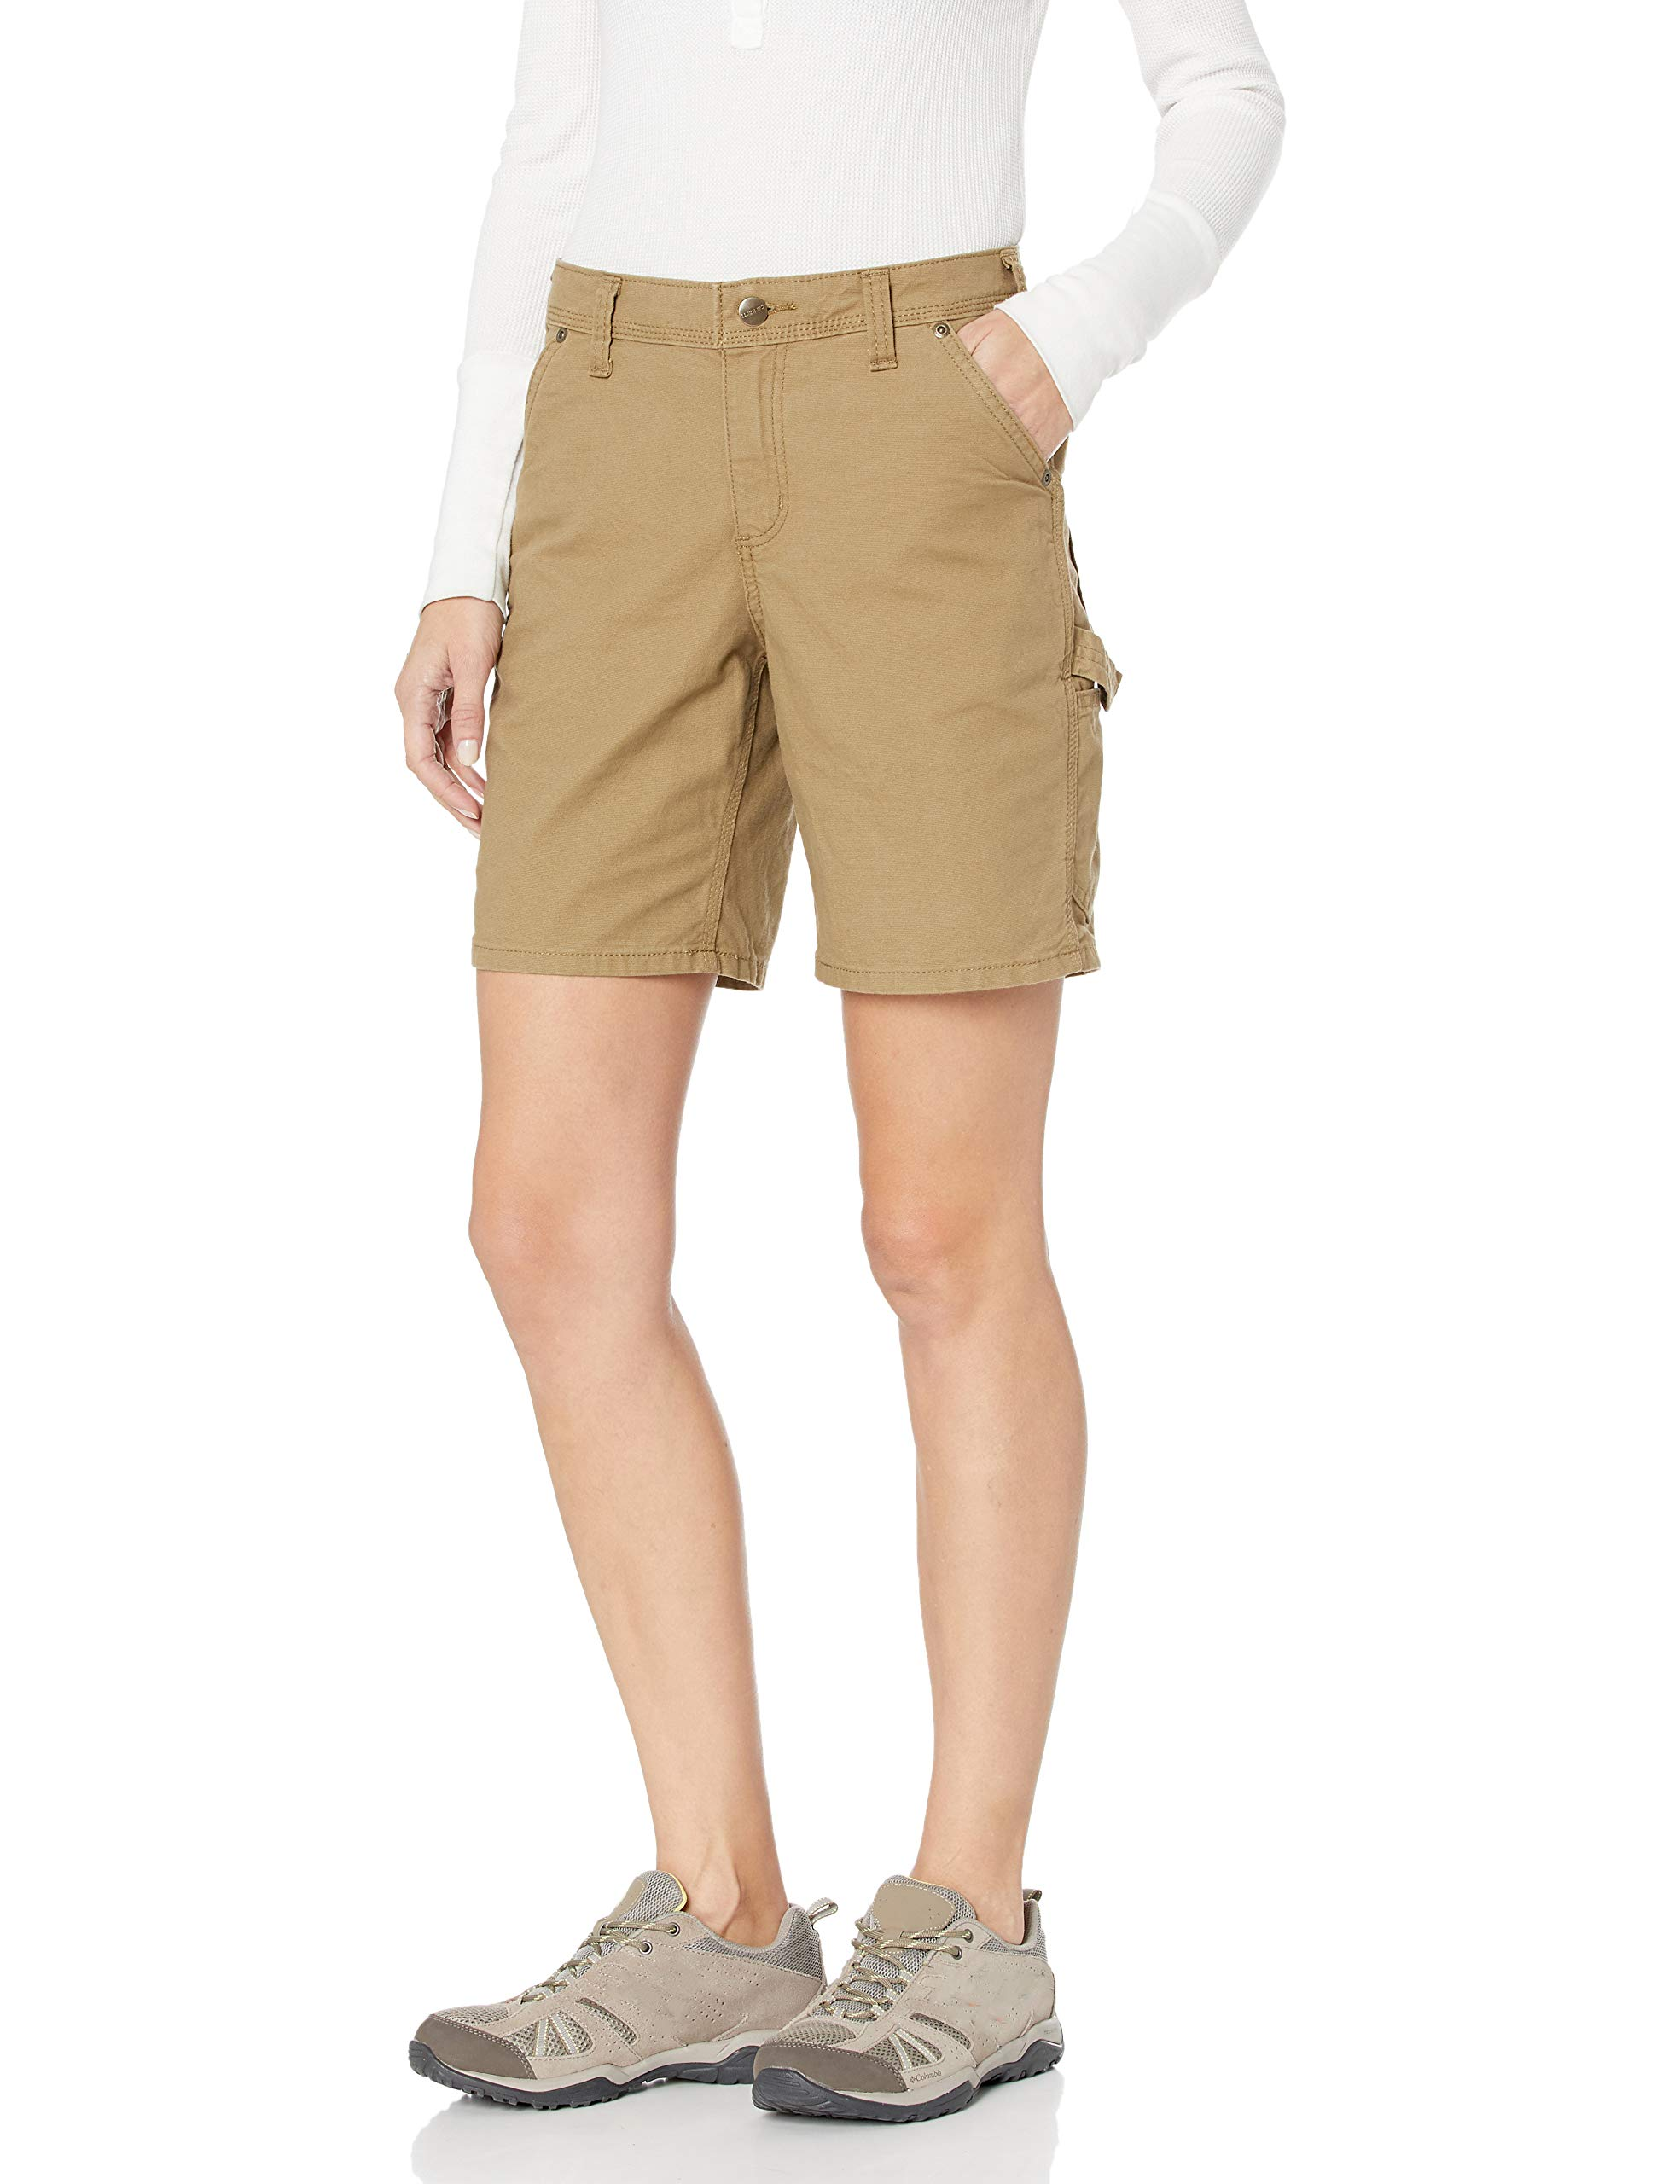 Carhartt Women's Original Fit Crawford Short